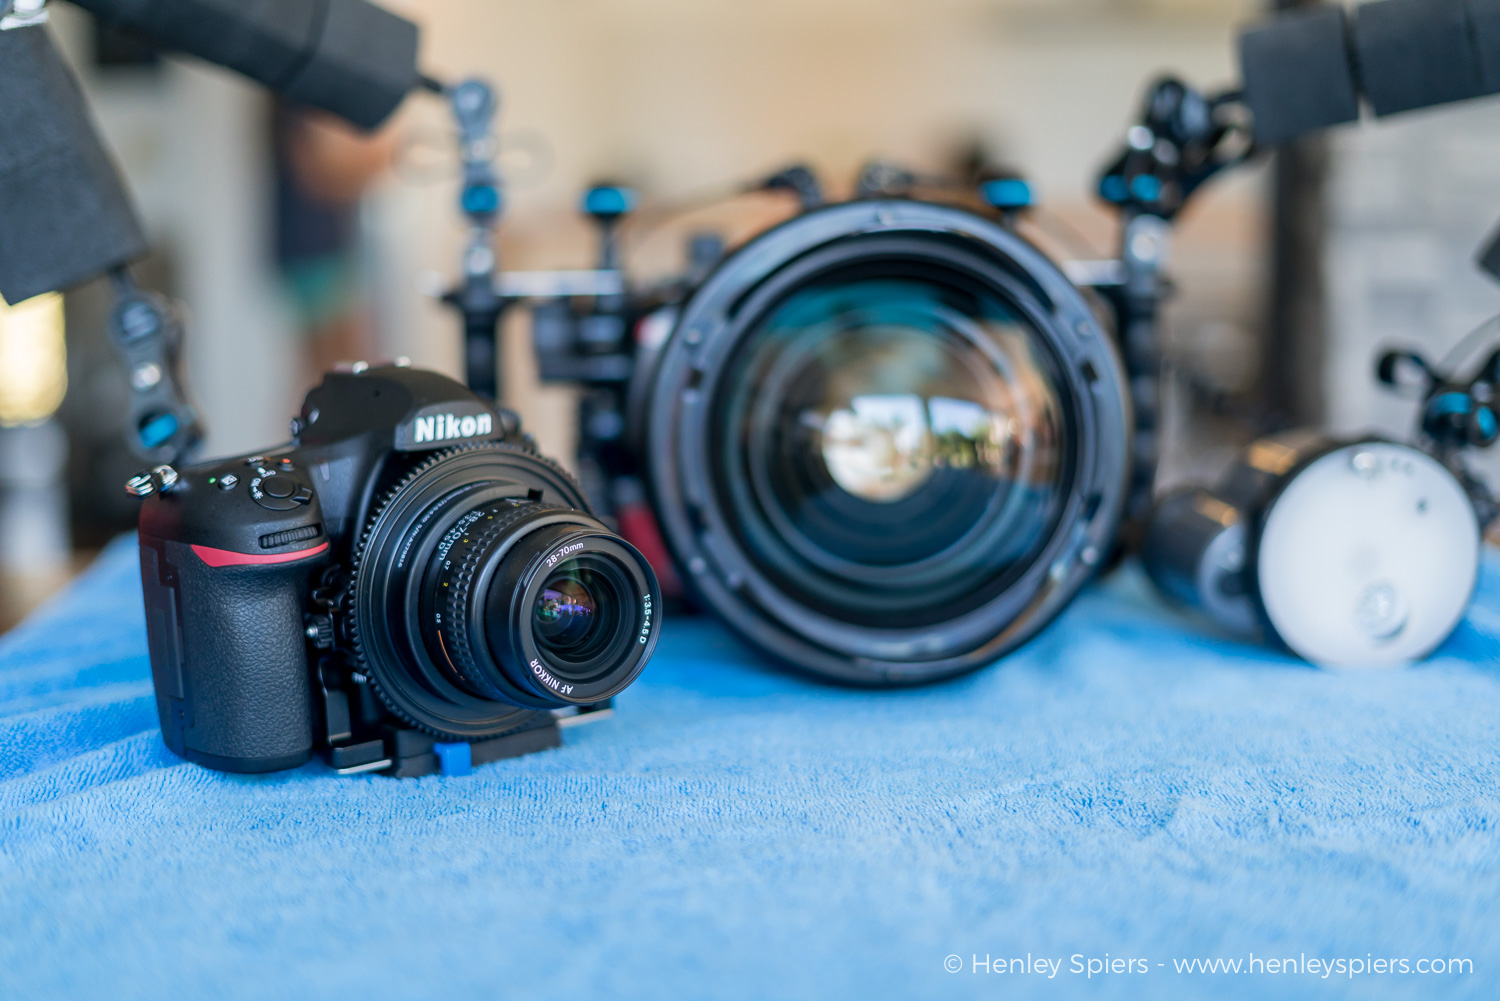 The WACP combined with the 28-70mm lens fills you with confidence that you can tackle almost any subject encountered